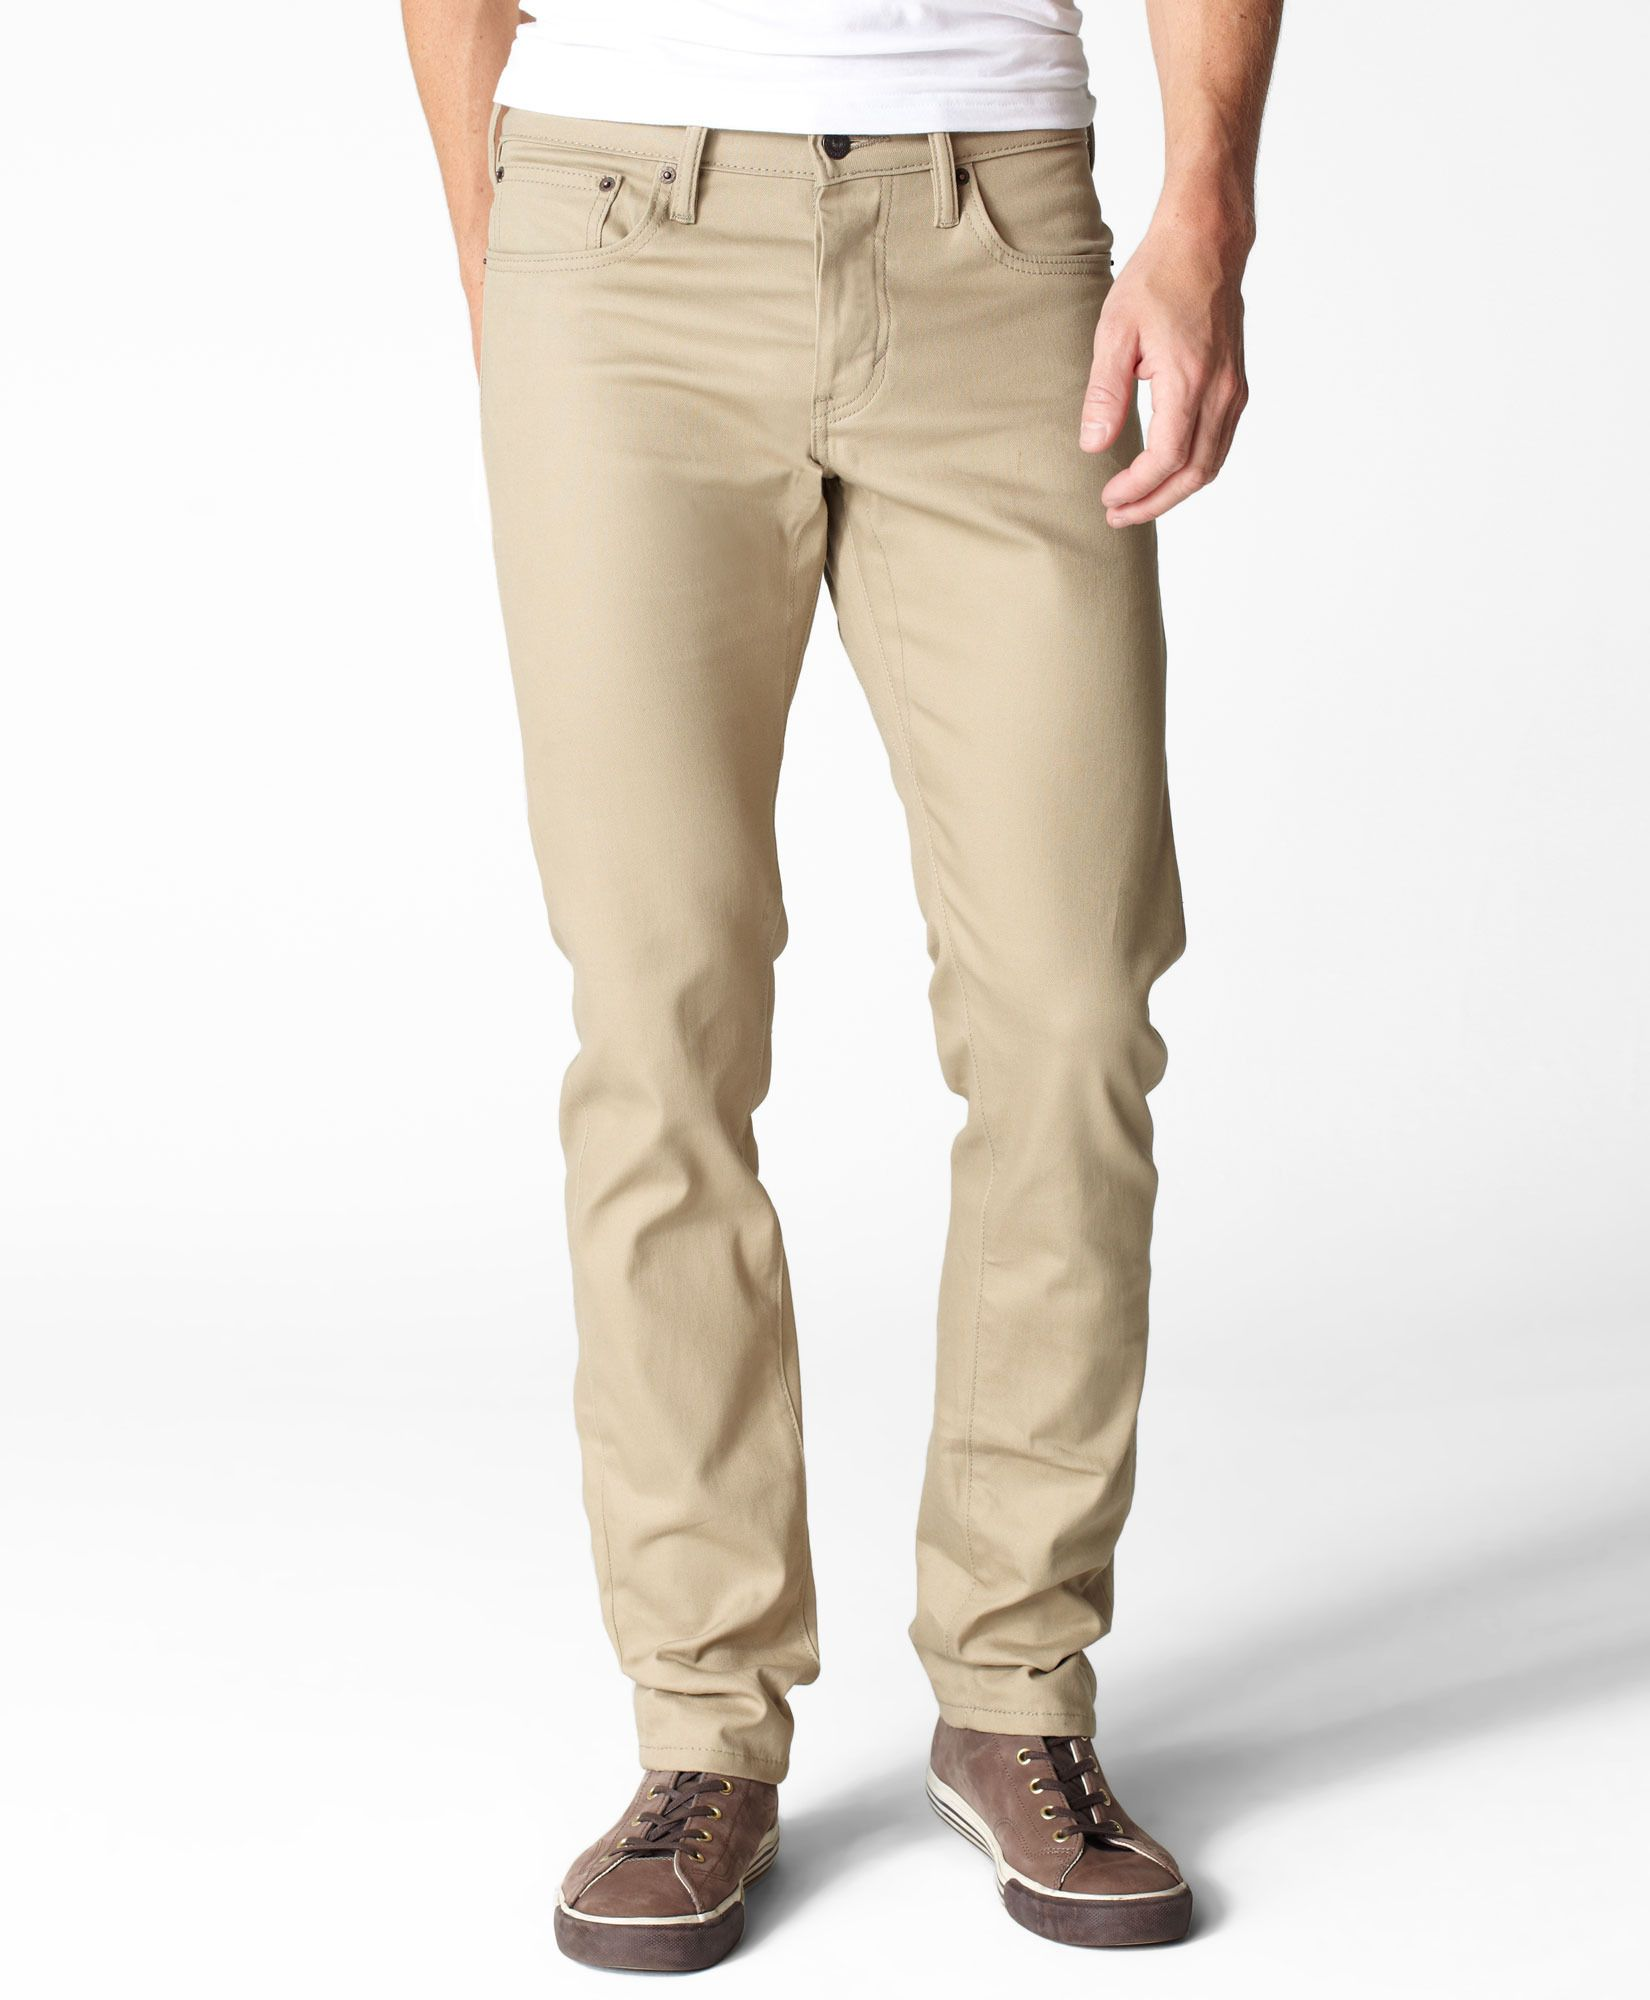 77bf7e45f32 Levis 511 Commuter - water repellent and anti-smell like poop ...